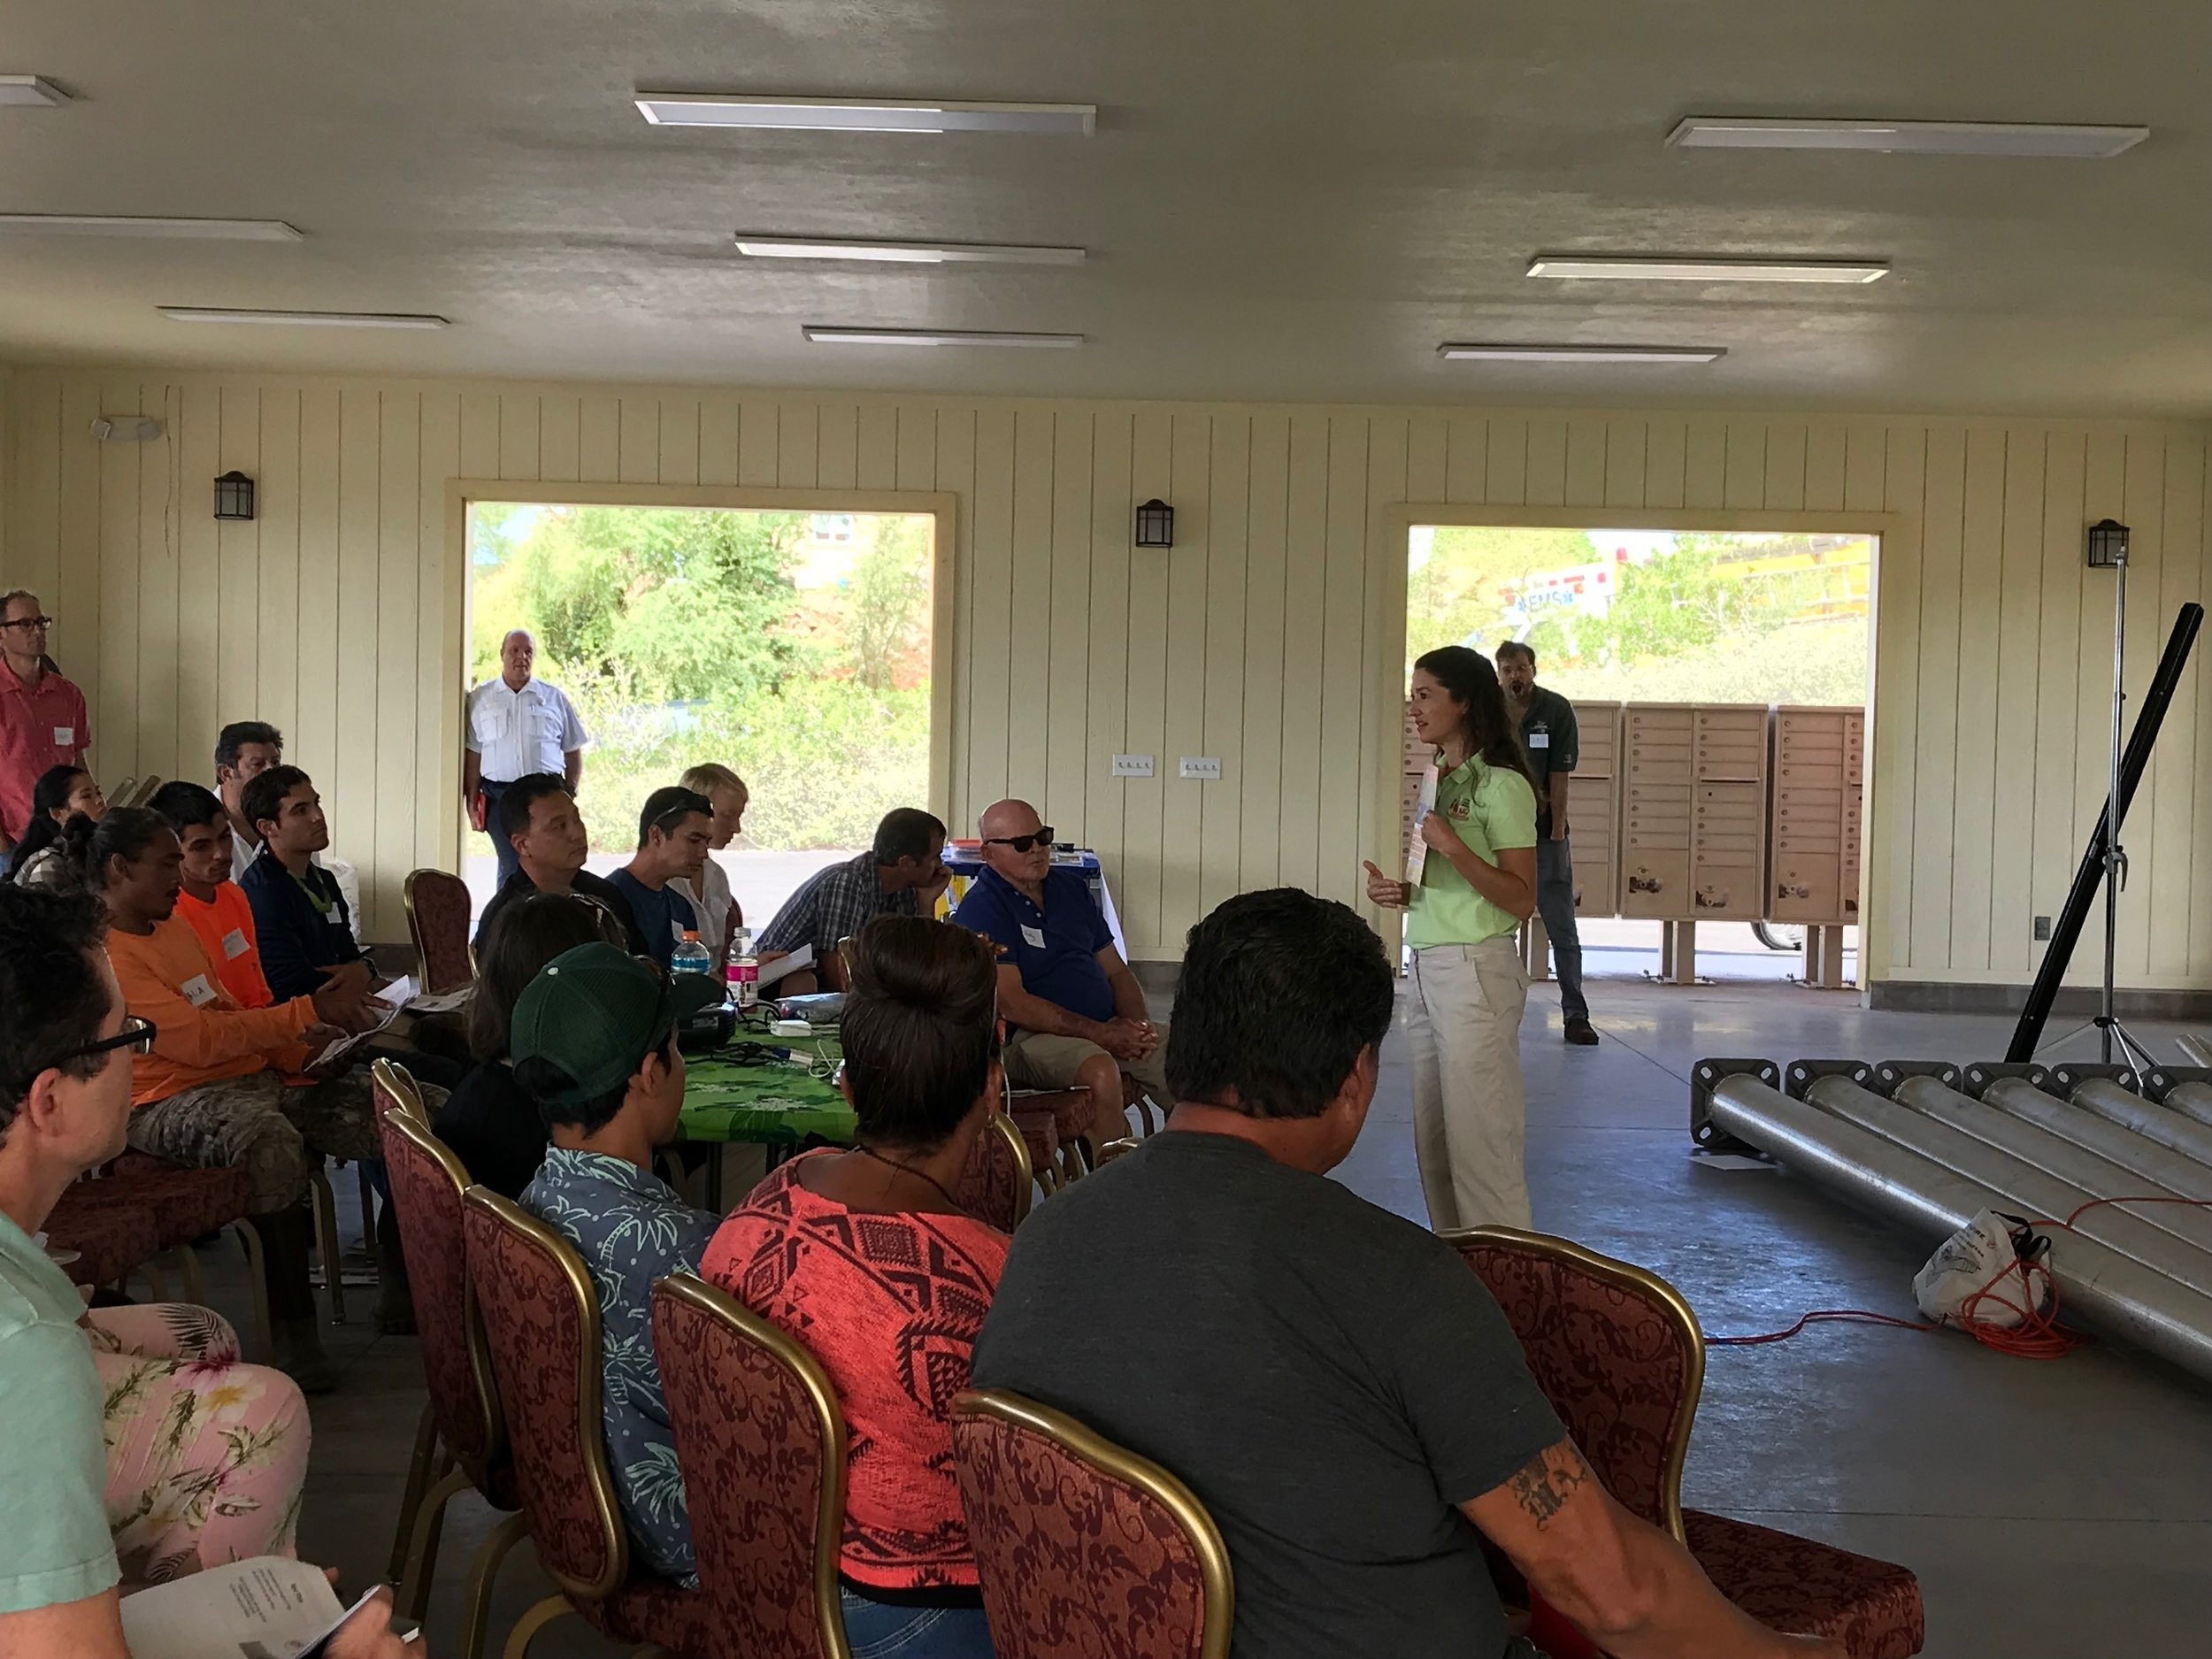 Hawaii Island Kailapa Vegetative Fuels Management Collaborative Action Planning Workshop_2_26_2019_65.jpg